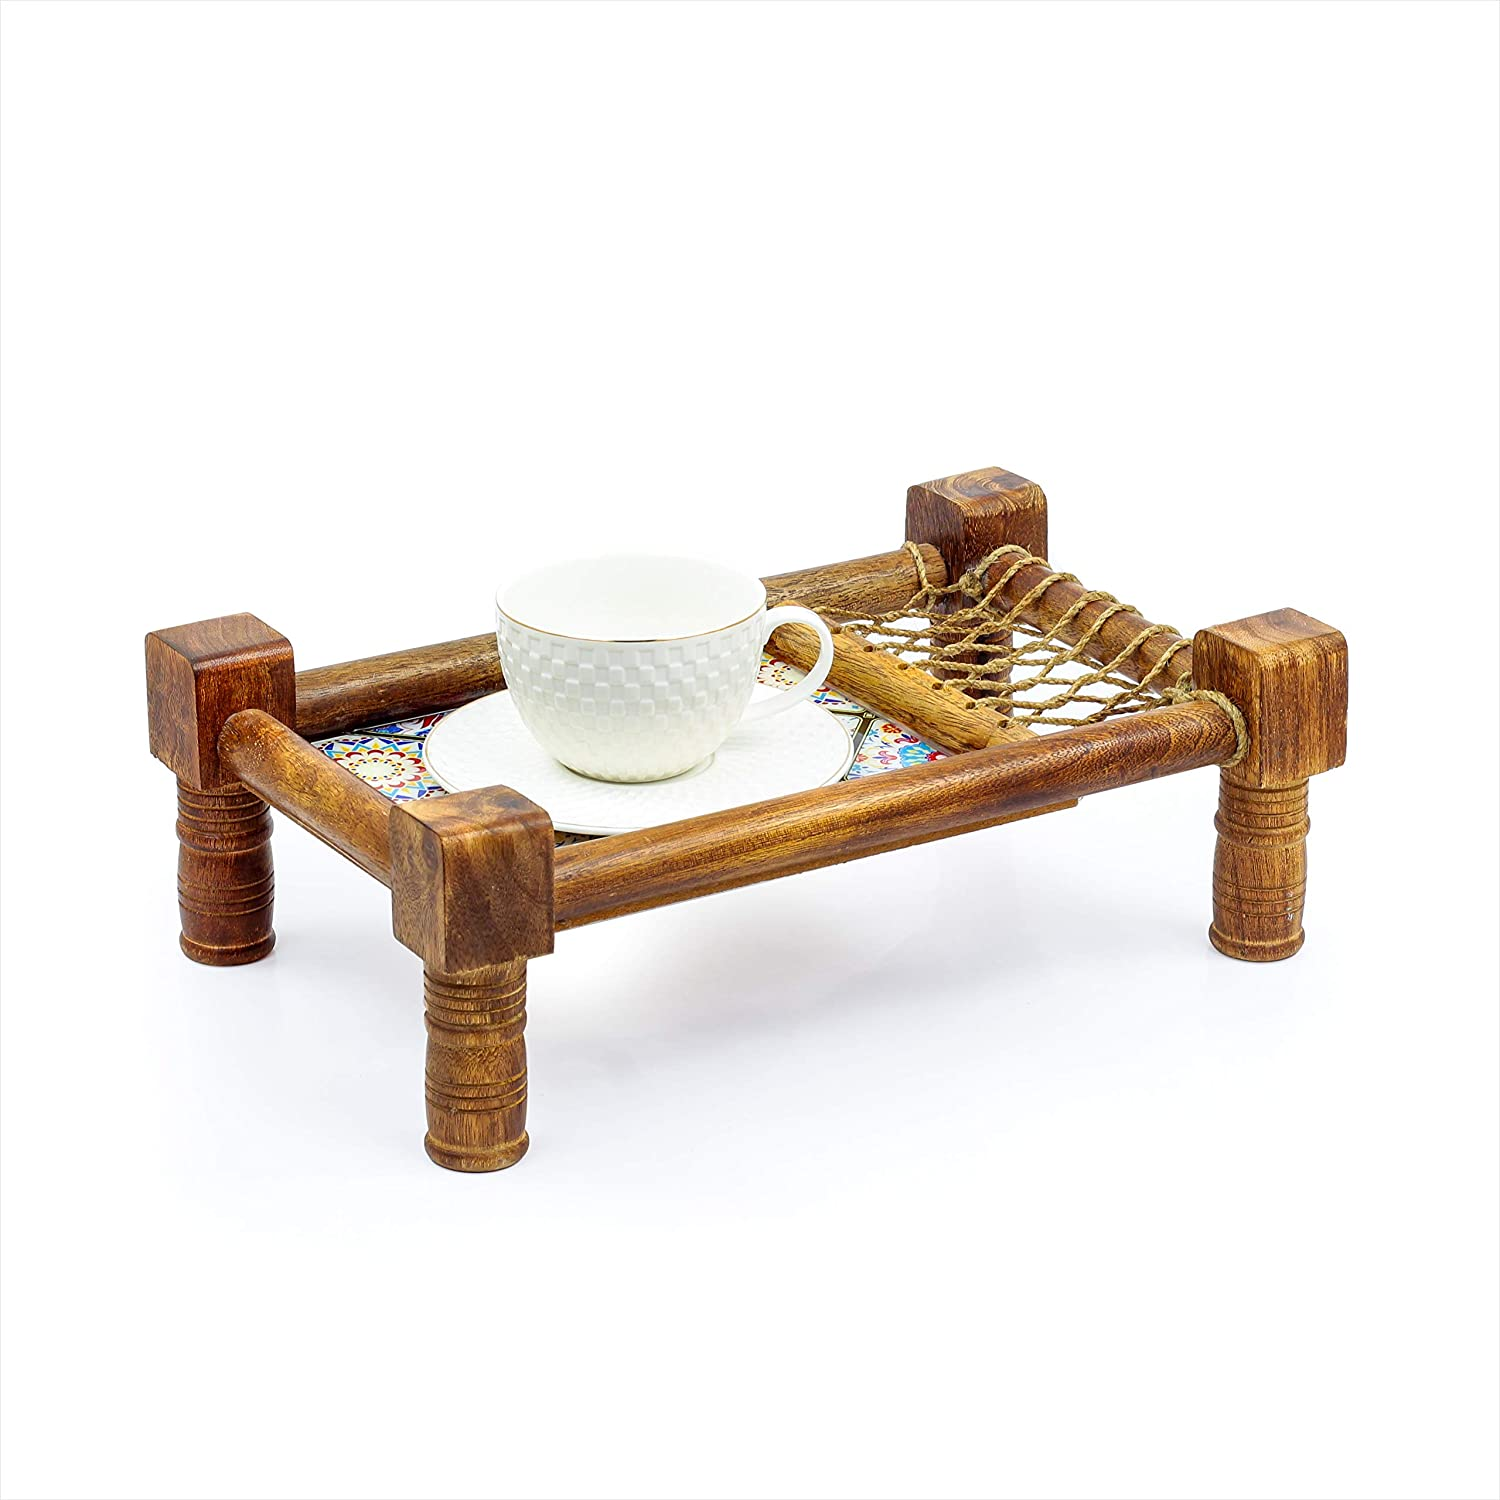 Traditional Decorative Asian Cot Tray for Snacks & Drinks | North Indian Decorative Wooden Coat Decor Accent | Nagina International